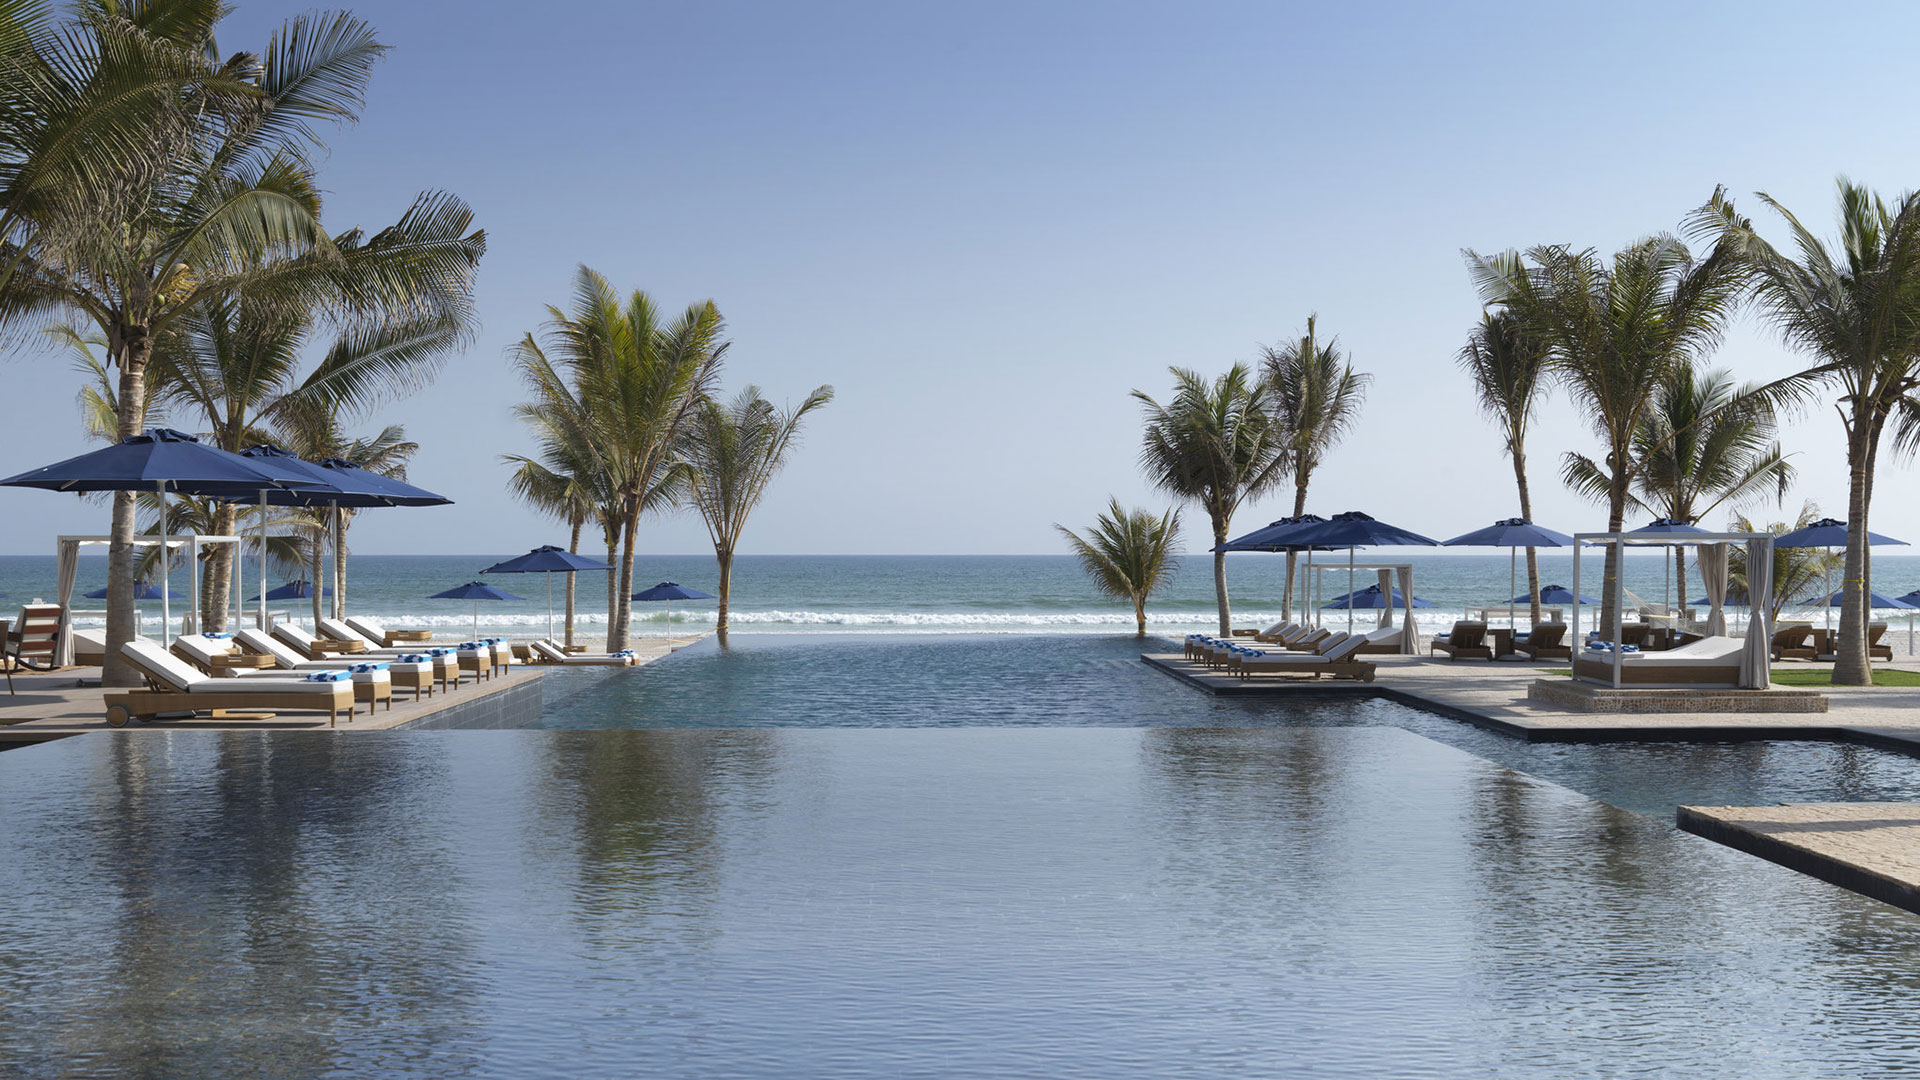 POINT at the AL BALEED resort